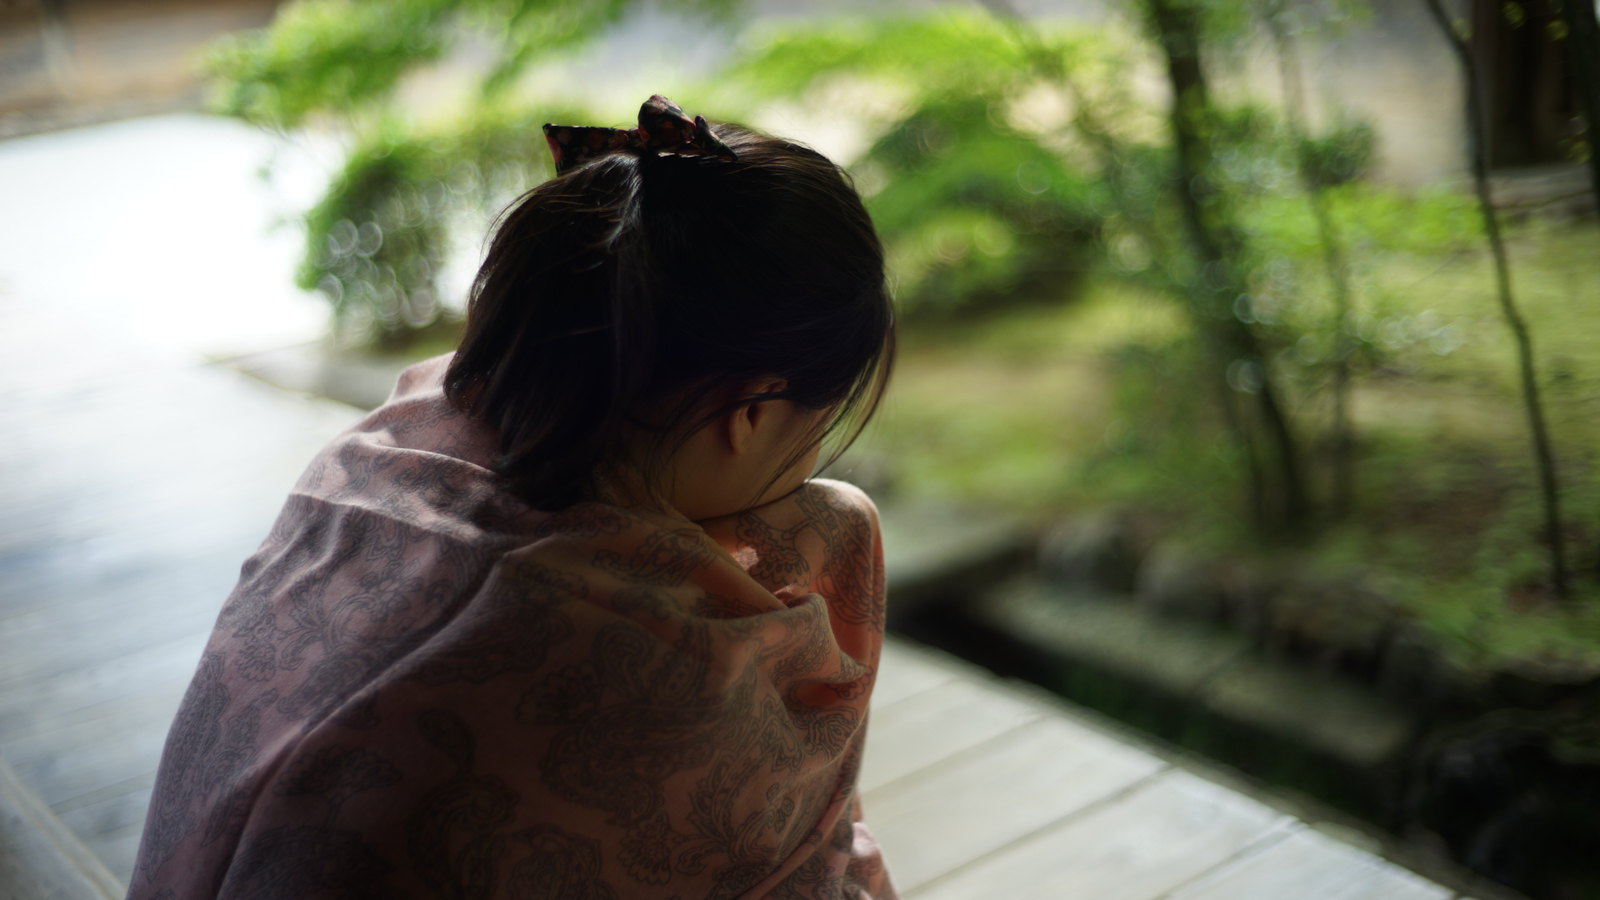 Sad girl at the Zen Garden. #Kyoto #japan15 #SonyA7 #Voigtlander40mm #ryoanji